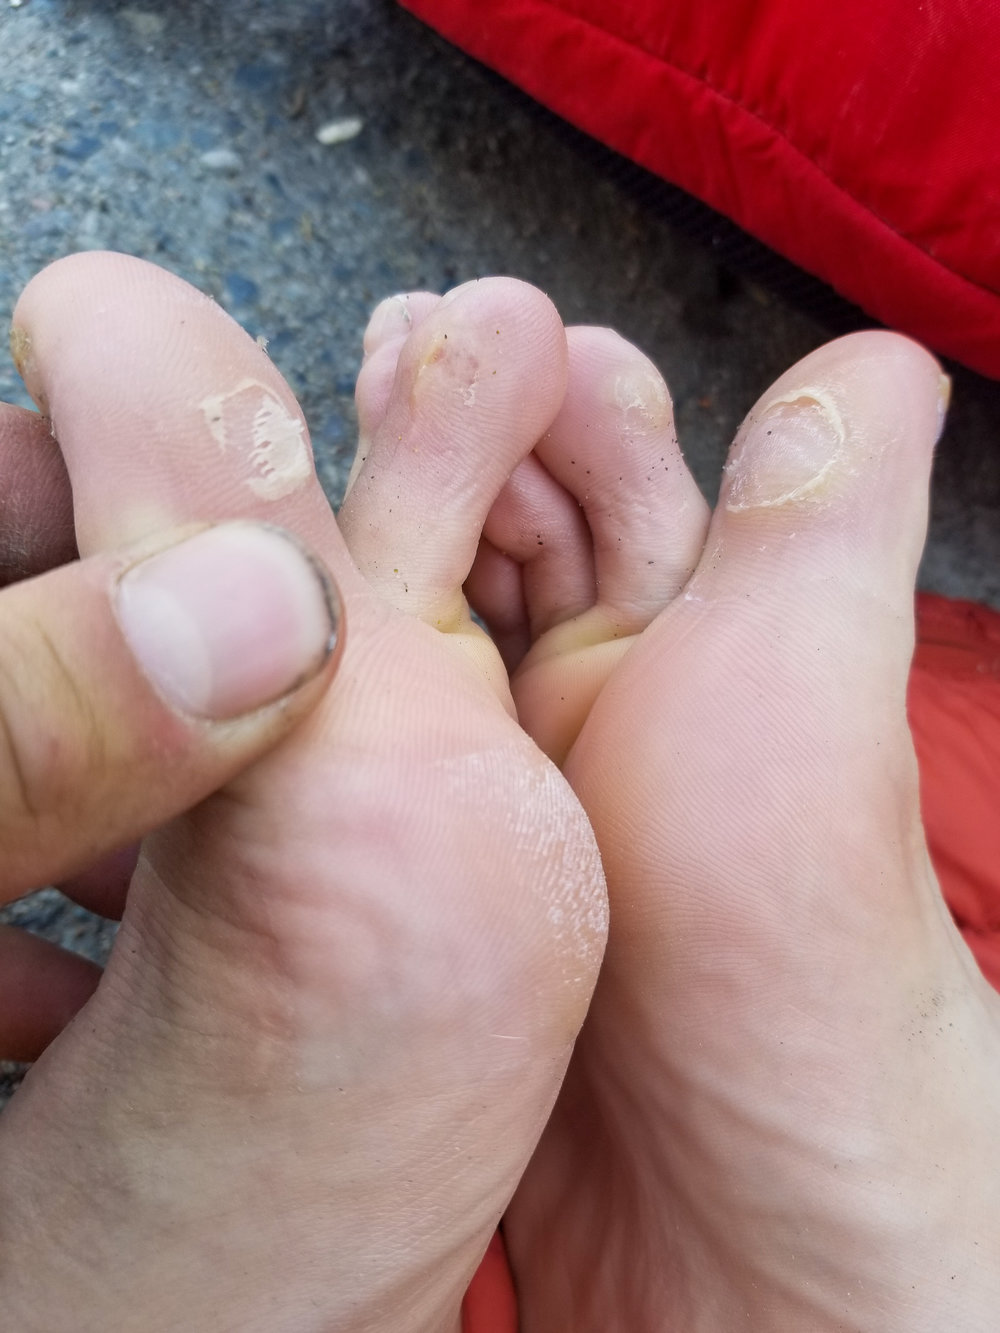 Post trip feet fun times!